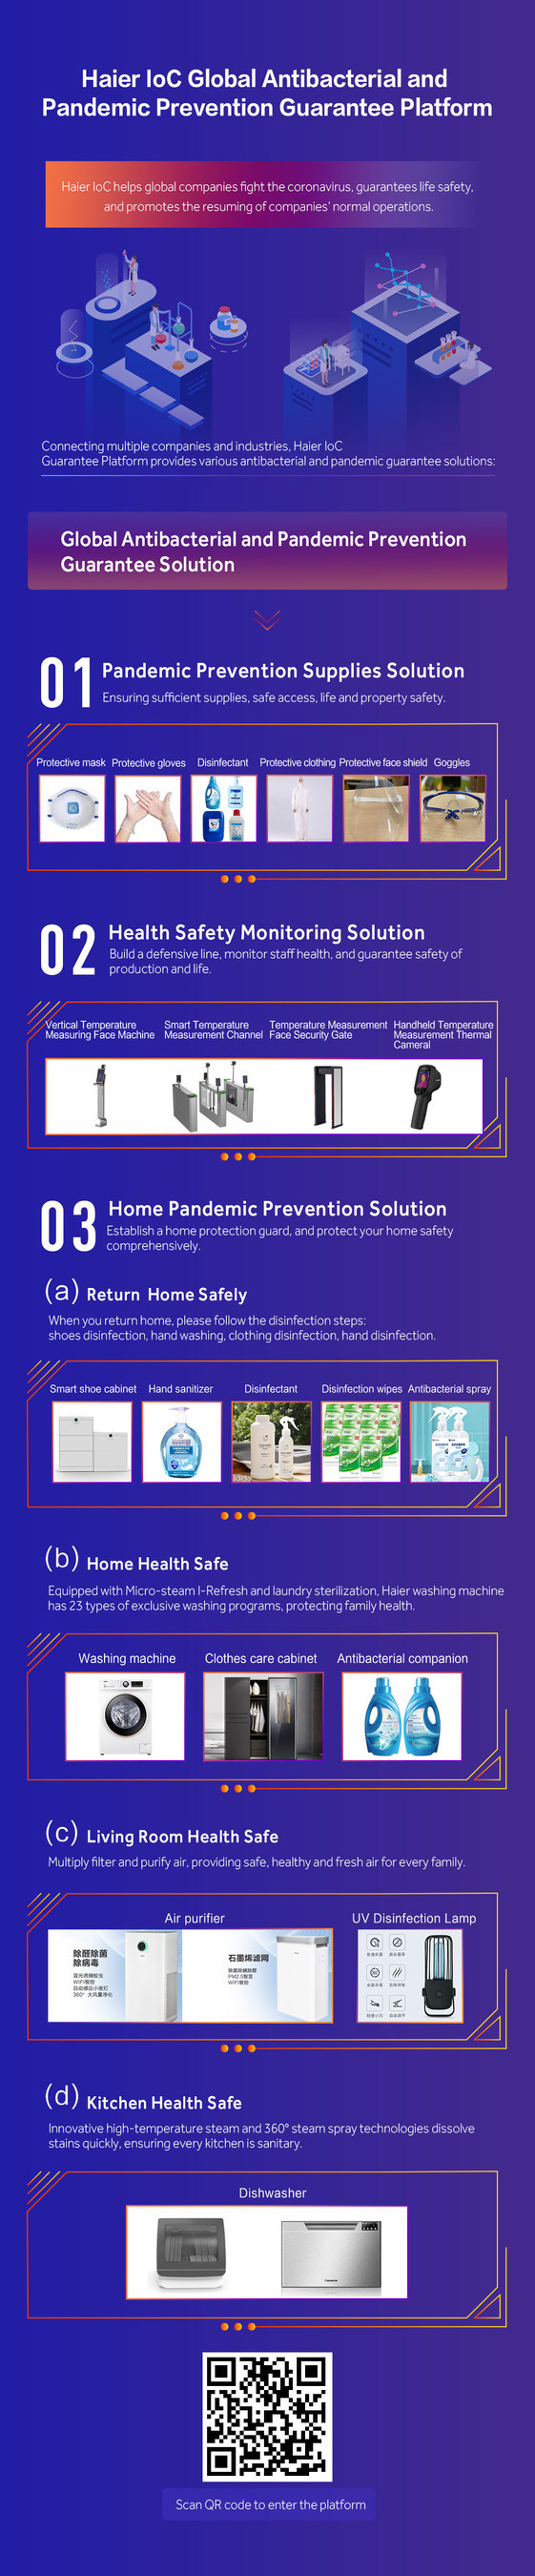 Haier Smart Home Launches IoC Global Antibacterial and Epidemic Prevention Guarantee Platform.